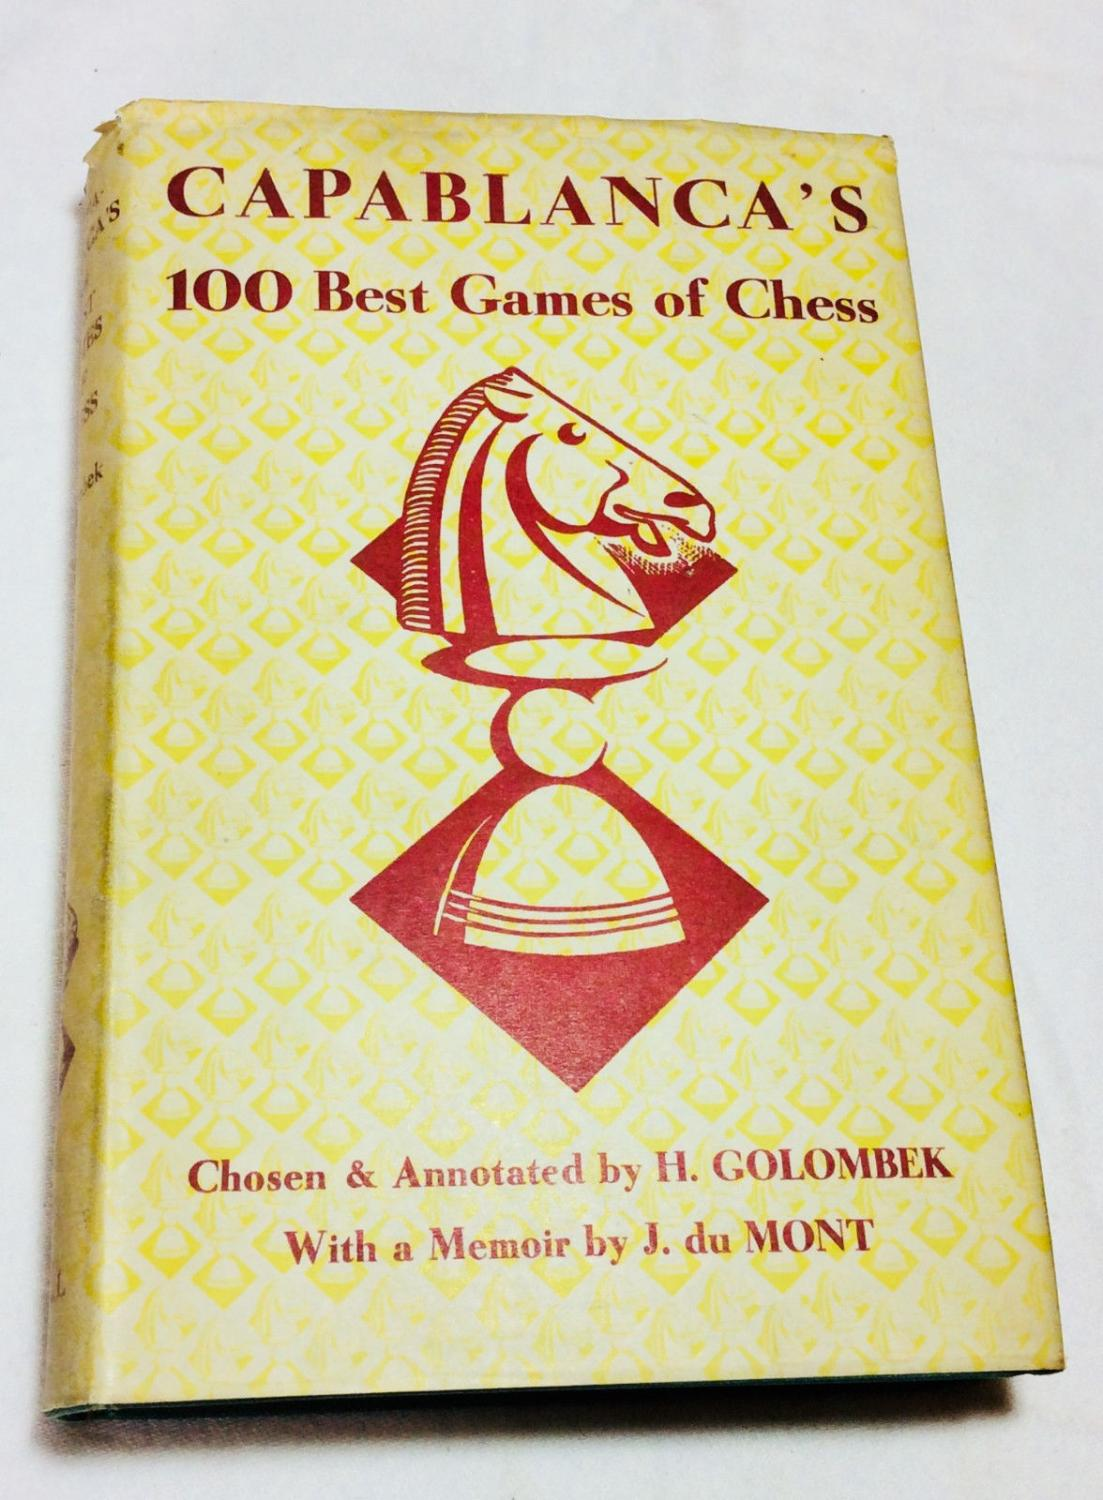 Capablanca's 100 Best Games of Chess, H. Golombek, Bell and Sons, London, 1947